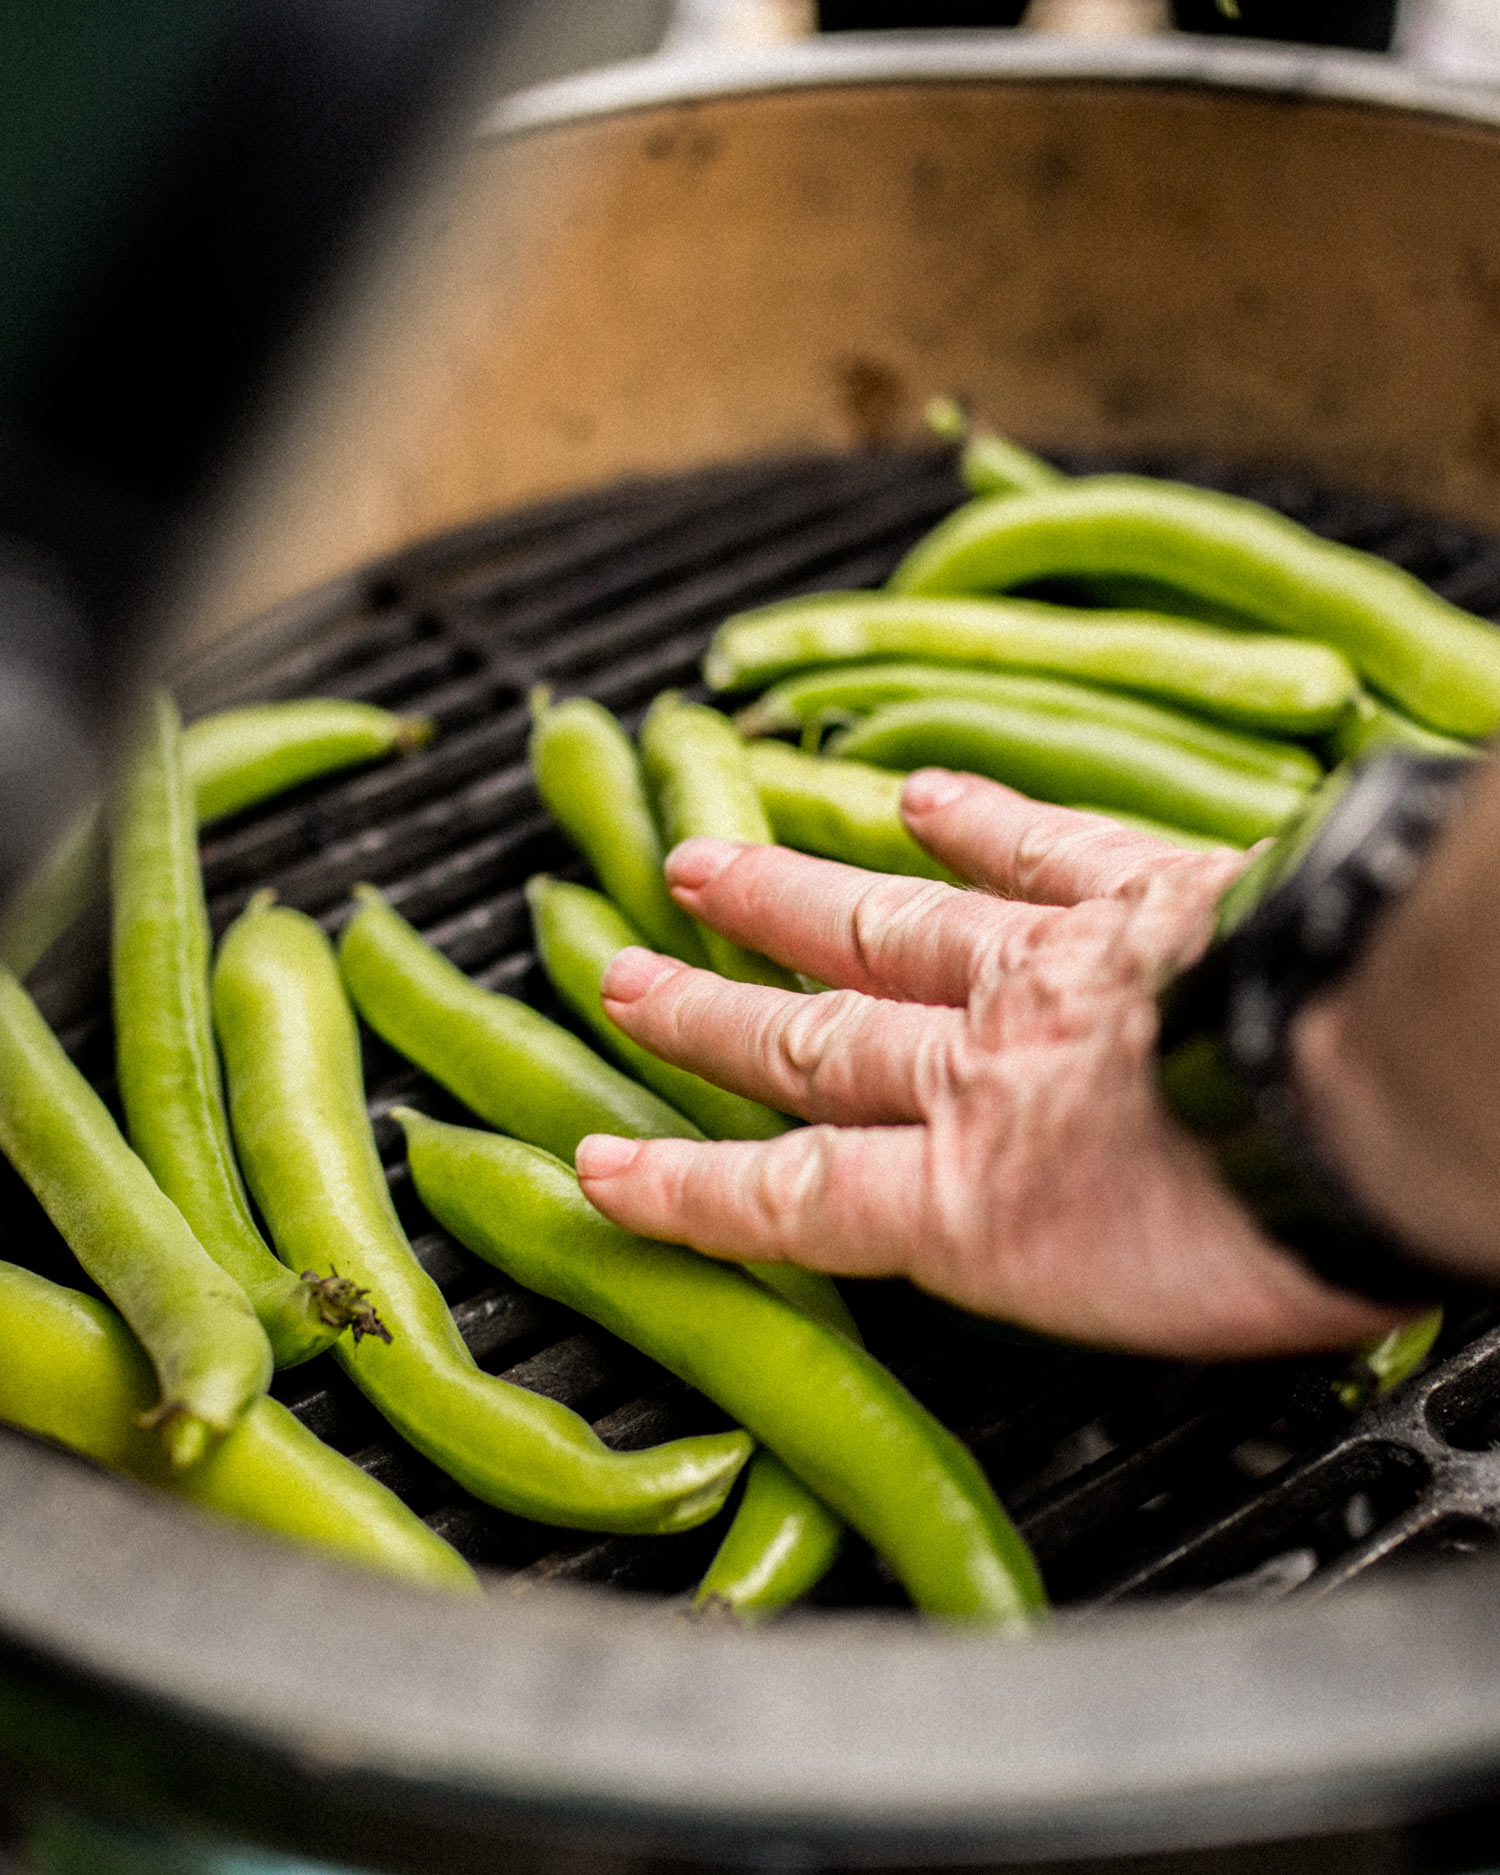 cooking the broad beans